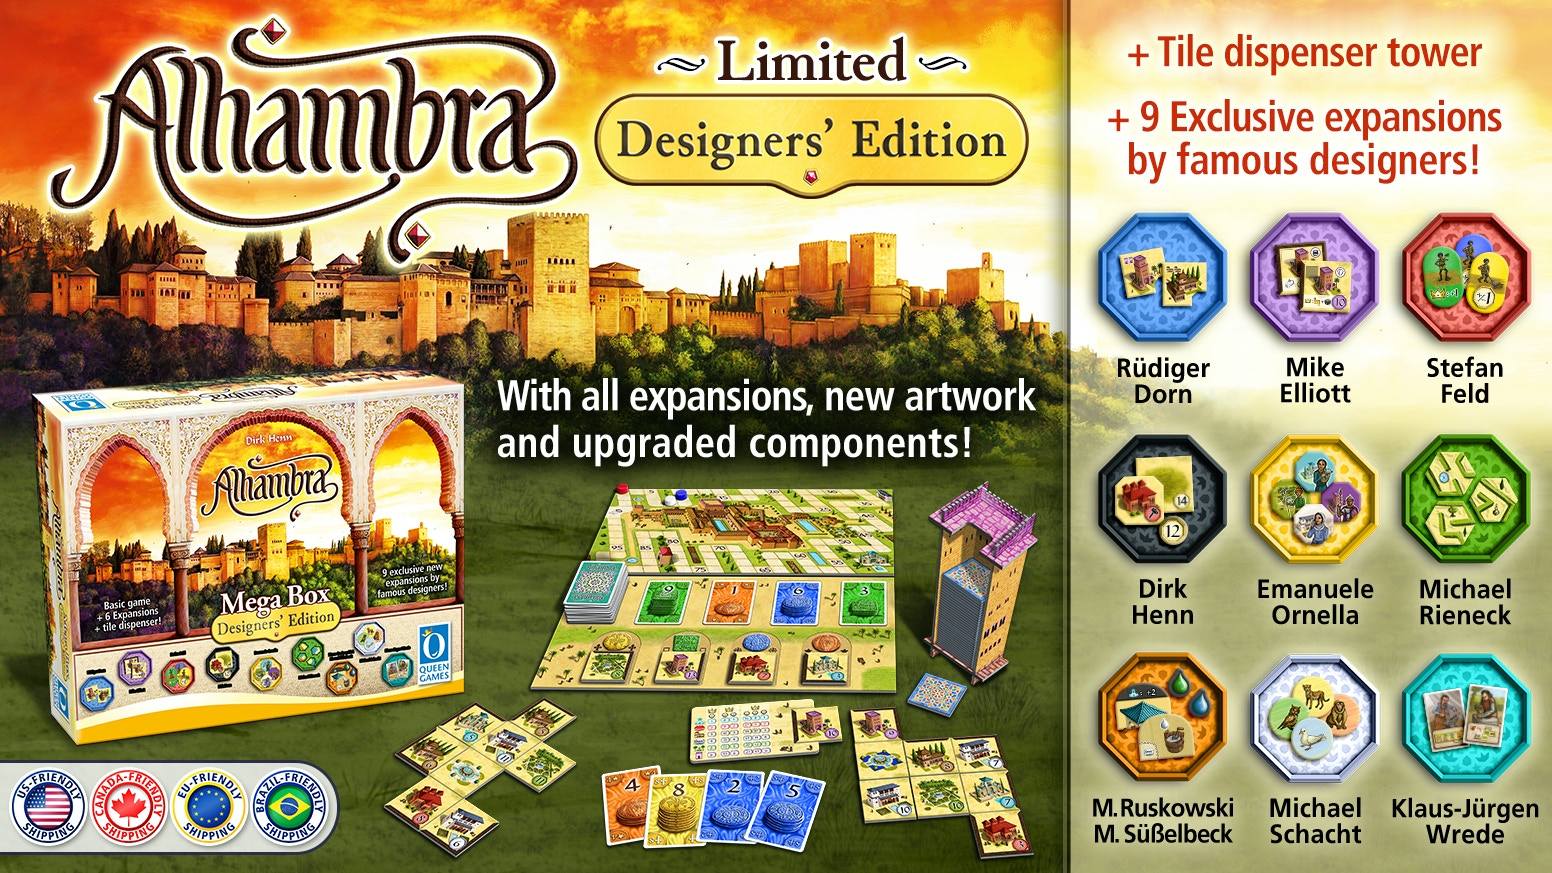 Alhambra with all new artwork, upgraded components and exclusive expansions of world-famous designers!